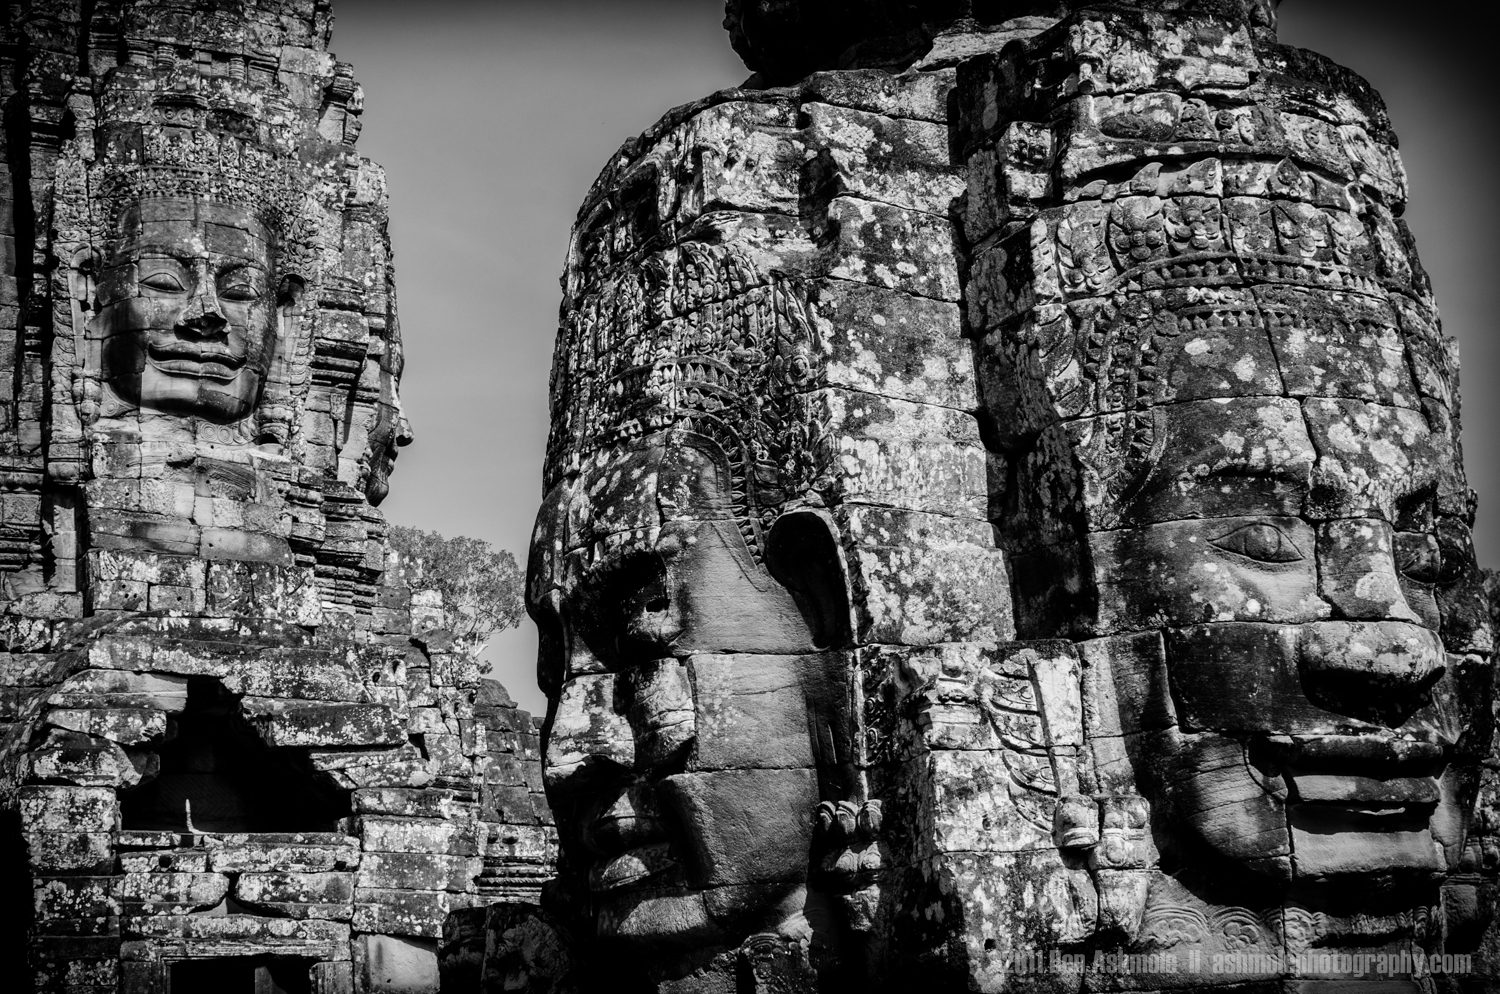 The Faces Of Bayon, Angkor, Cambodia